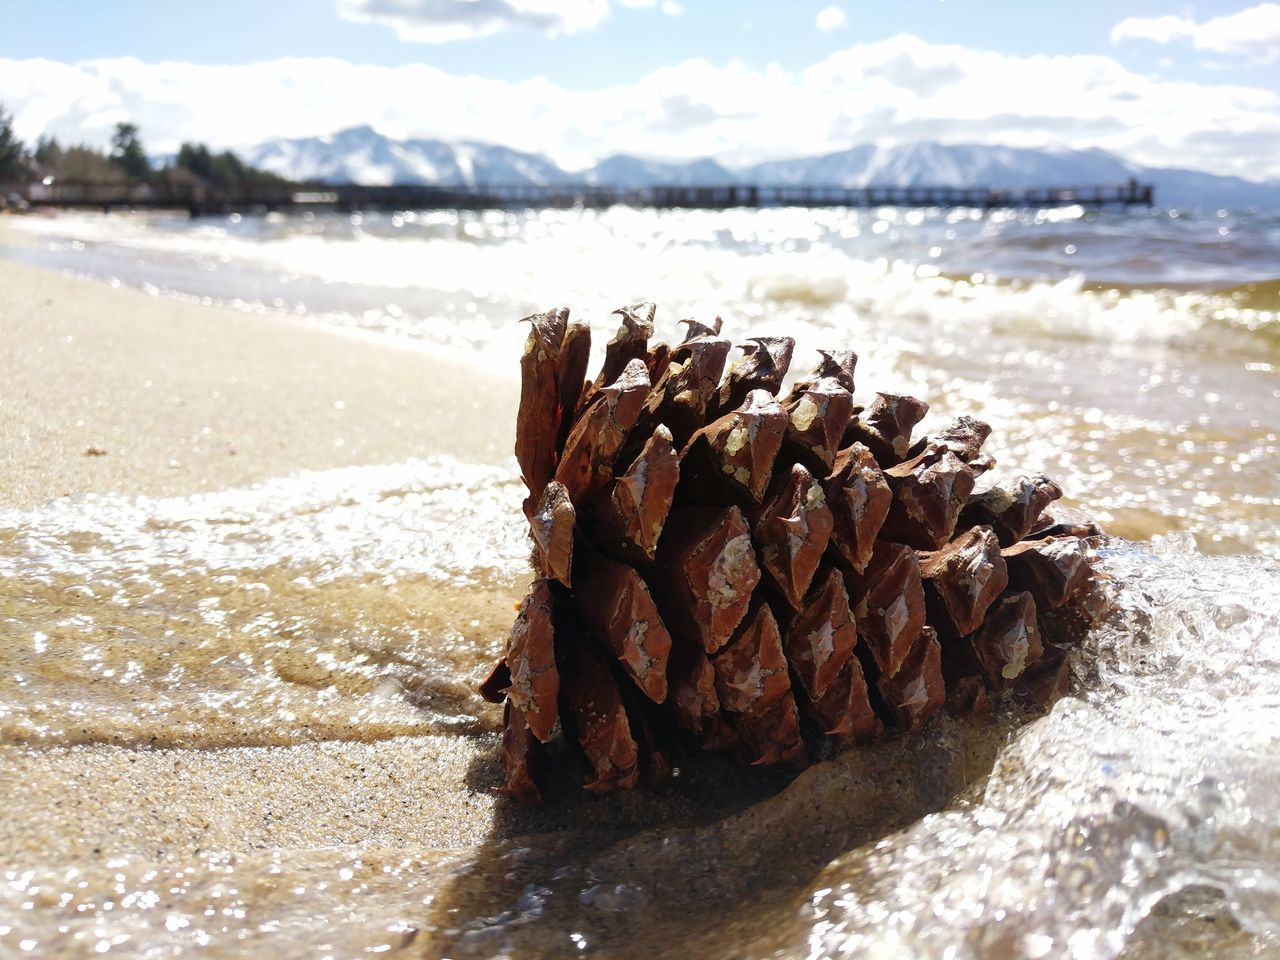 Tranquillity Sierra Nevada Mountains Water Close-up Pine Cone Waves Macro Nature Wave Sunlight Beach Nature Outdoors Beauty In Nature Sky Day Summer Mountains And Beach Lake Alpine Lake Alpine Beach California